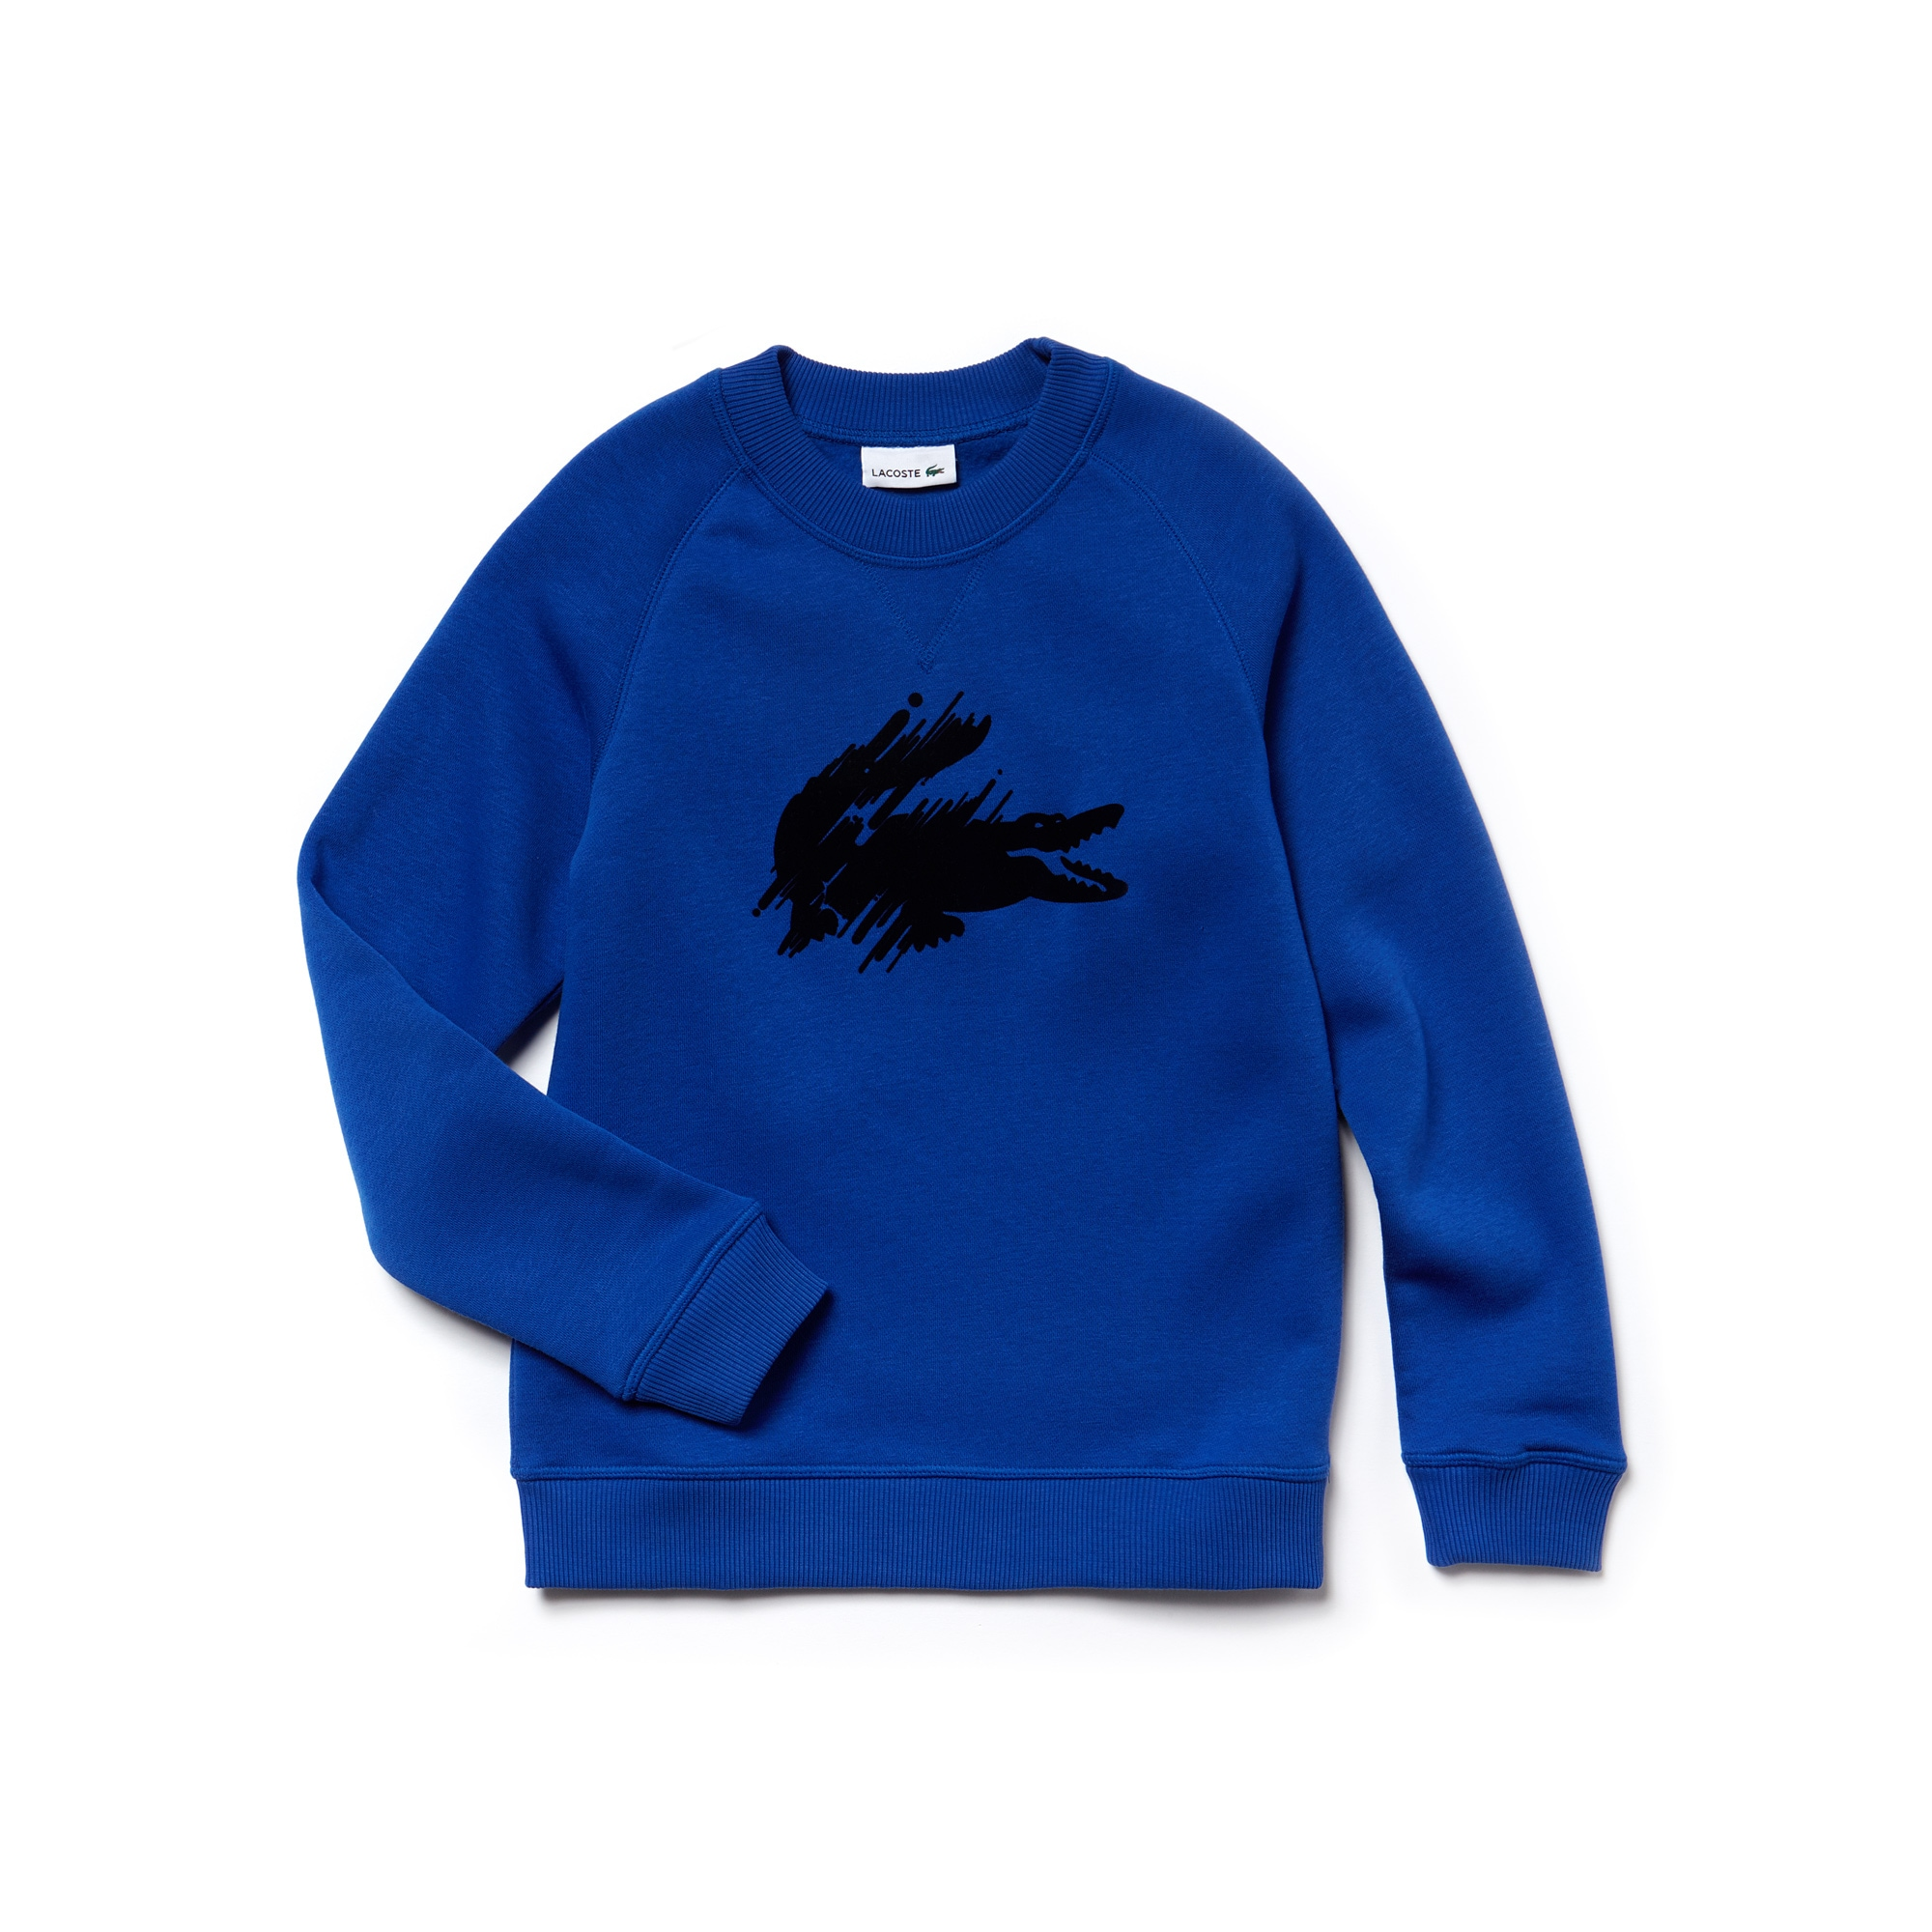 Boys' Crocodile Fleece Sweatshirt